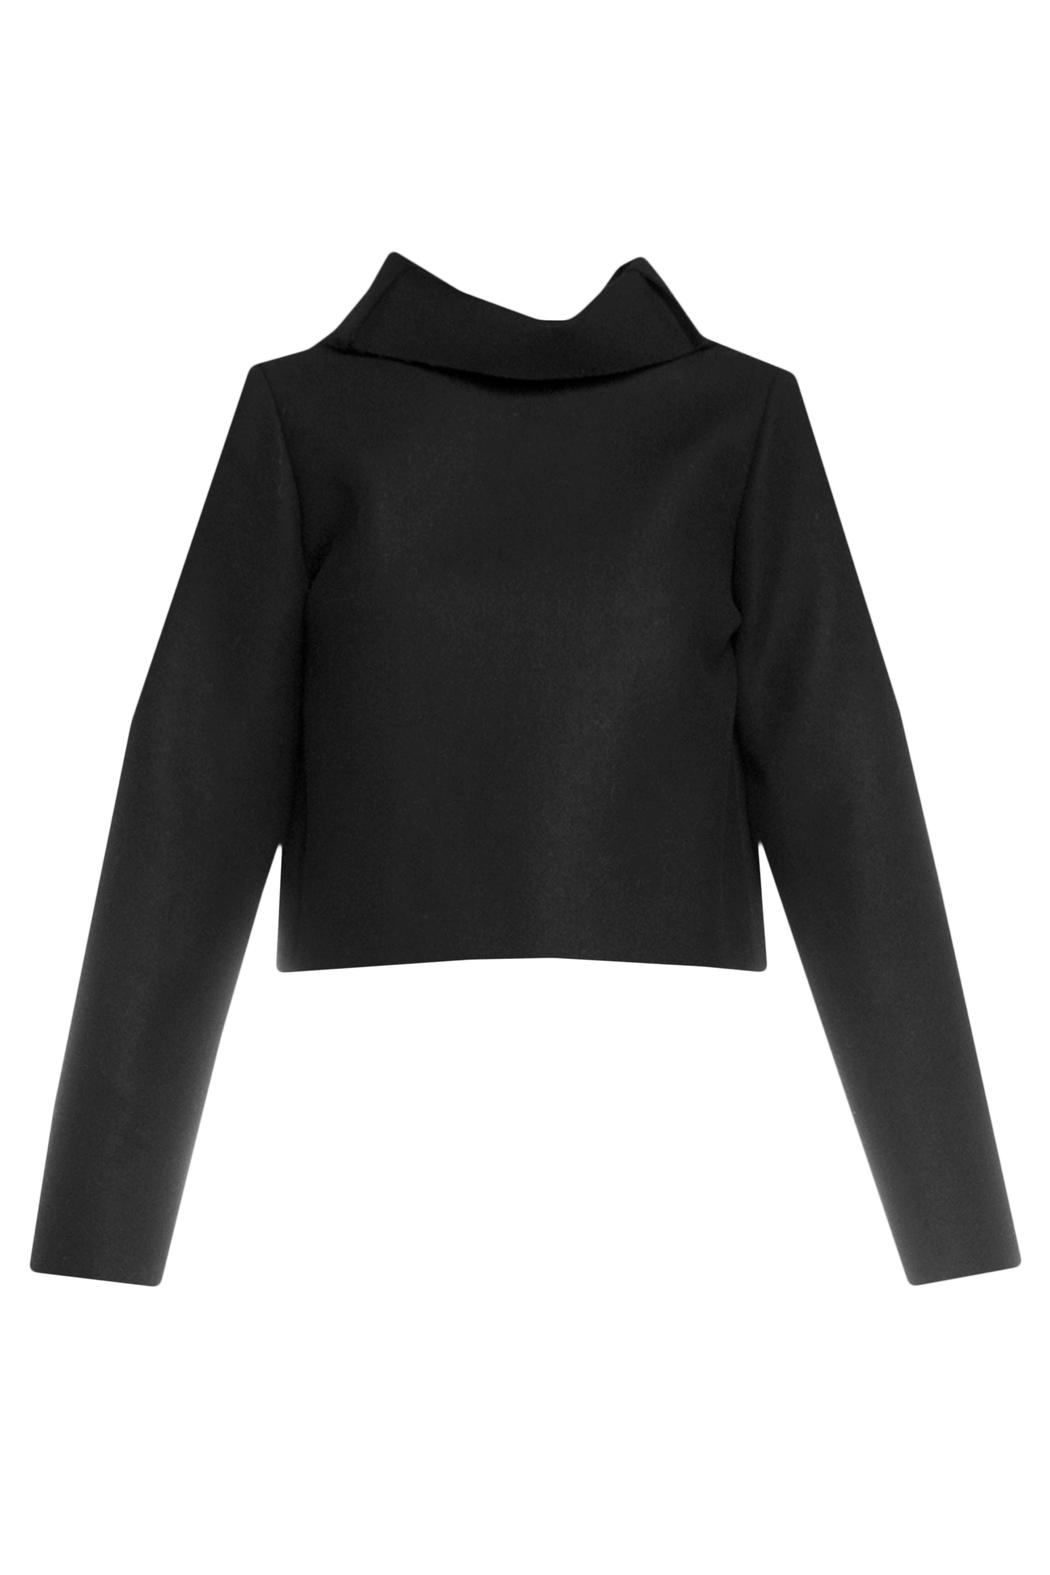 Charlie May Cowl Neck Top - Front Cropped Image